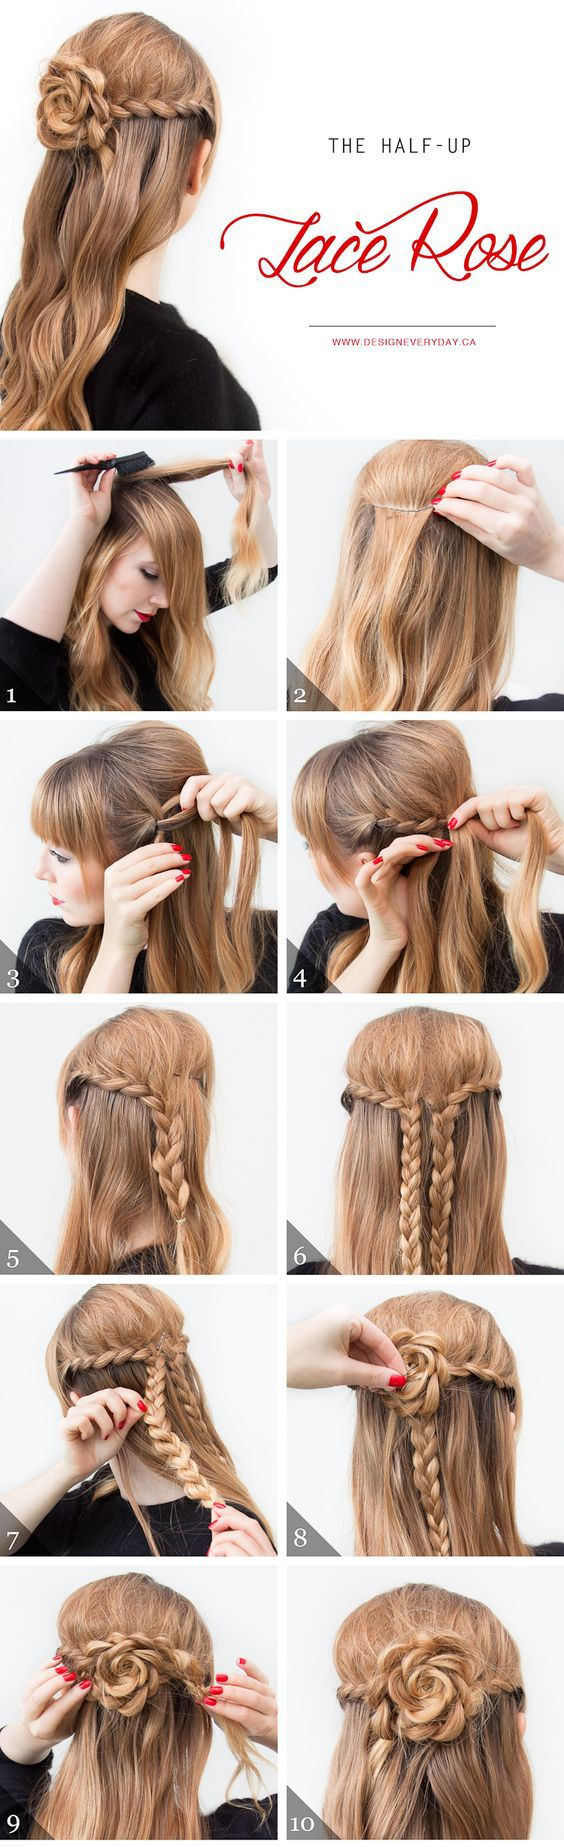 In case you haven't noticed yet, the half-up bun hairstyles have been spotted everywhere for the past few months – beauty blogs, Instagram pictures, Pinterest pins, and even on red carpet events. If you want to achieve the ever famous half-up, half-down bun, then this tutorial will guide you throughout the way. What is more,…